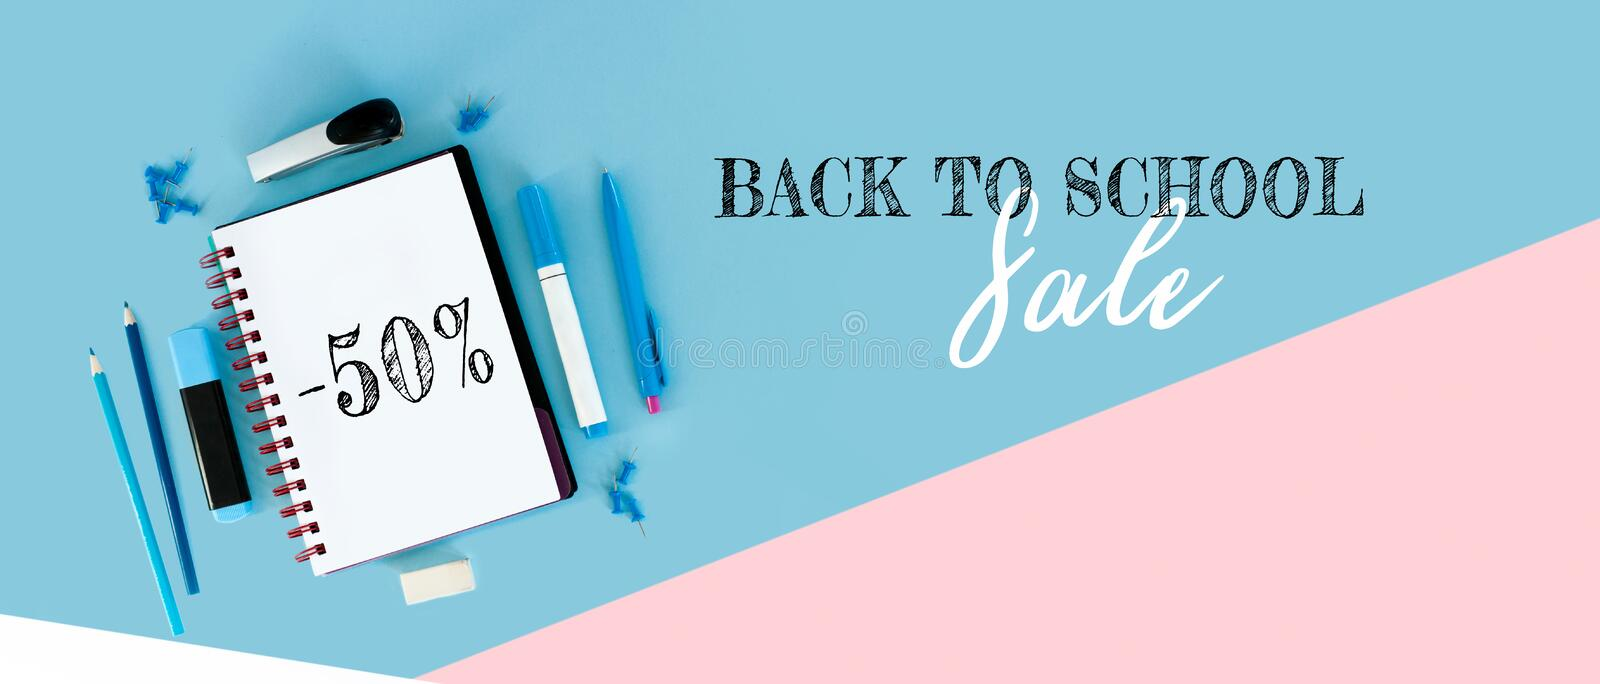 Design template for Back to school. Office school supplies. Creative Idea of education for banners. Sale posters. royalty free stock photos